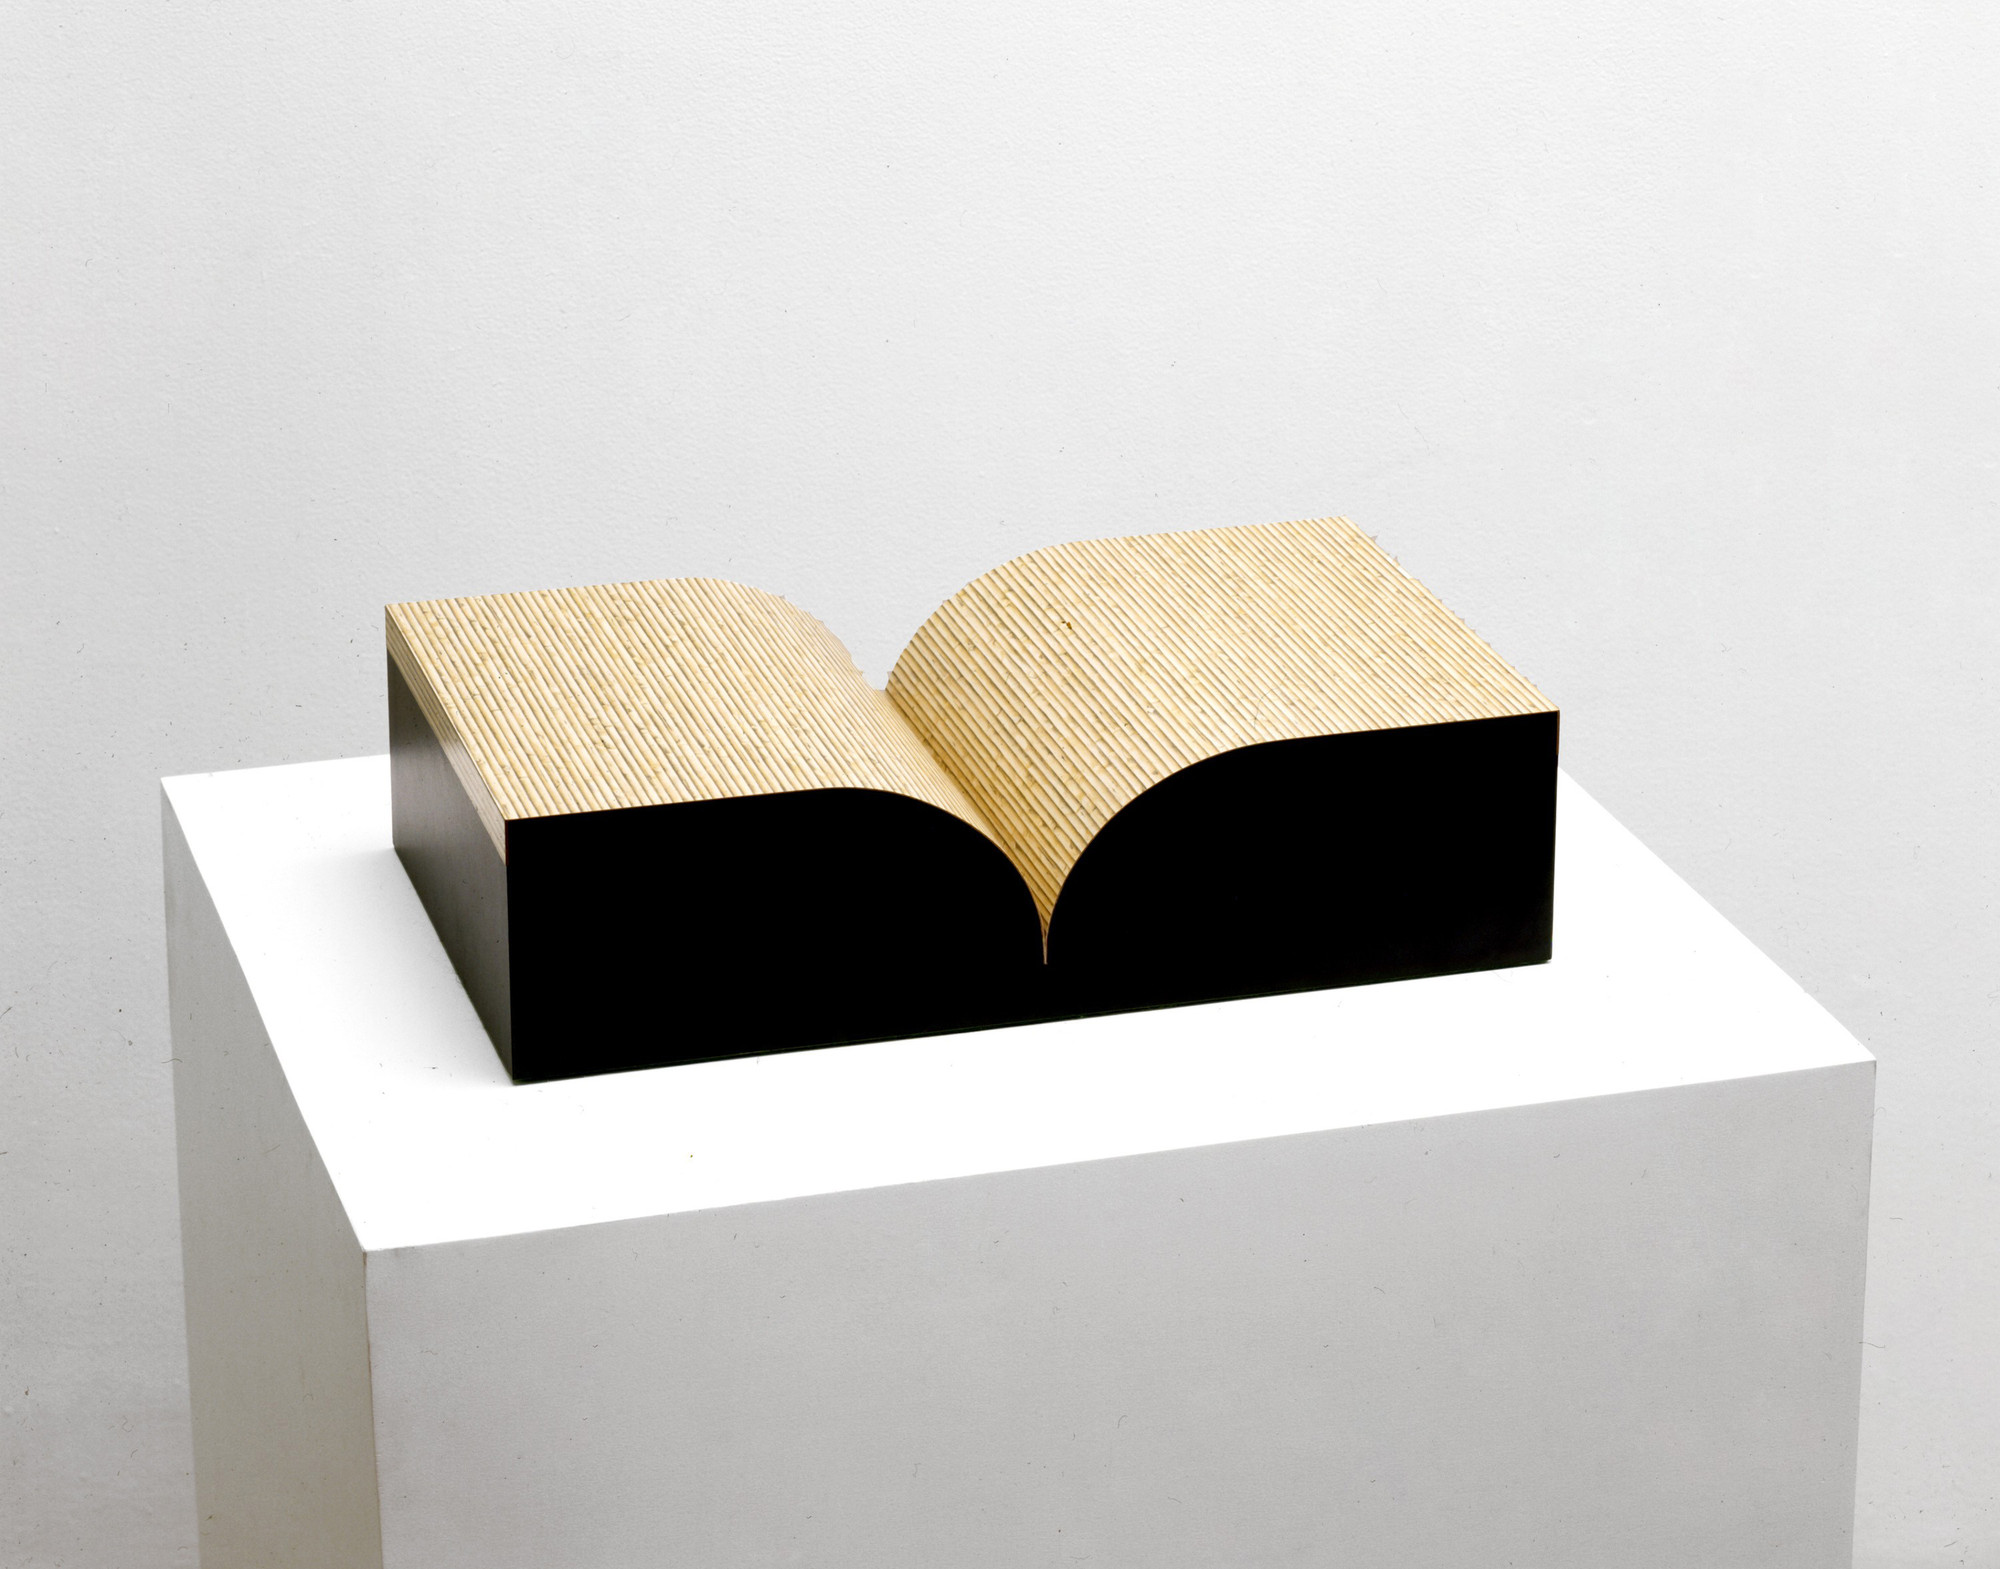 Richard Artschwager. Book. 1987. Multiple of formica and wood. object: 5 1/8 × 20 1/8 × 12 1/16″ (13 × 51.1 × 30.7 cm). The Museum of Modern Art, New York. Virginia Cowles Schroth Fund. © 2008 Richard Artschwager / Artists Rights Society (ARS), New York.